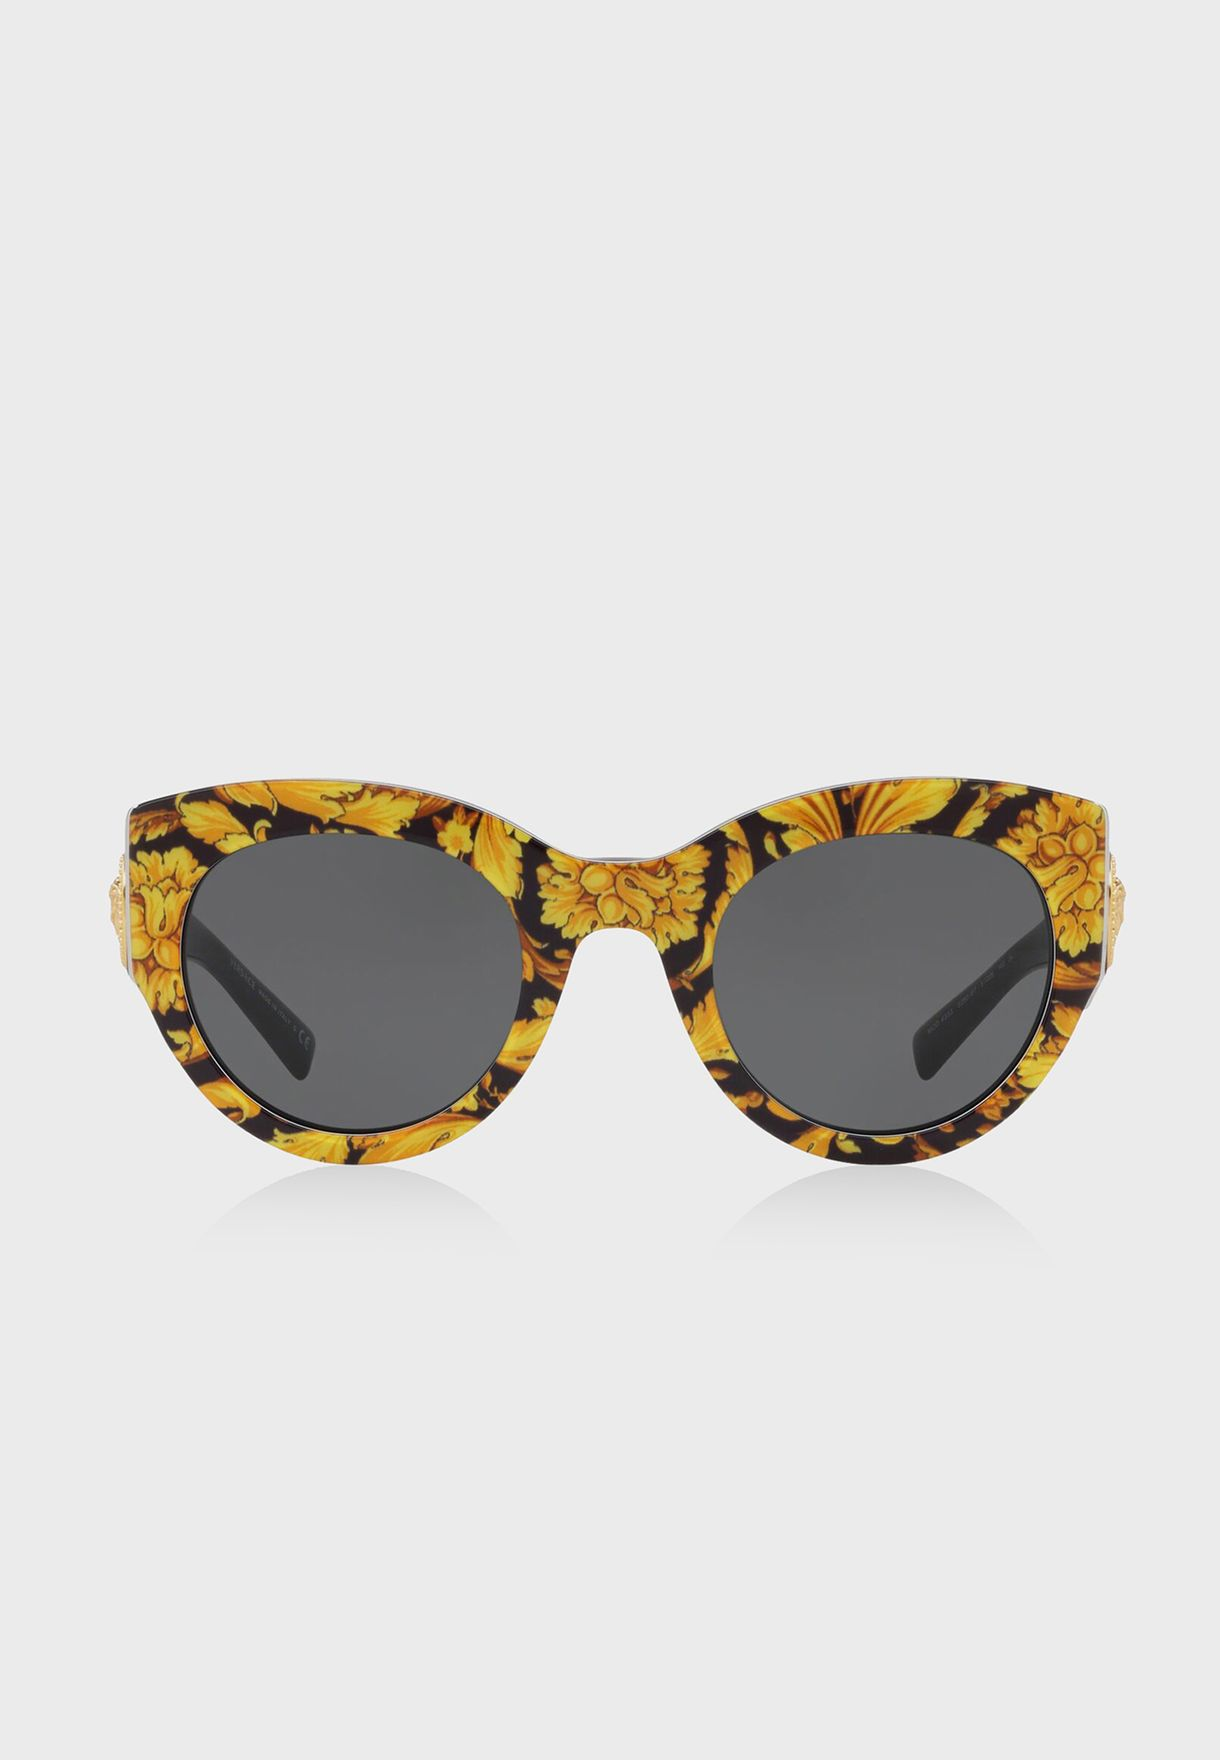 263087c4ee2 Shop Versace prints Floral Baroque Sunglasses 8.05367E+12 for Women in Saudi  - 74736AC76FAP